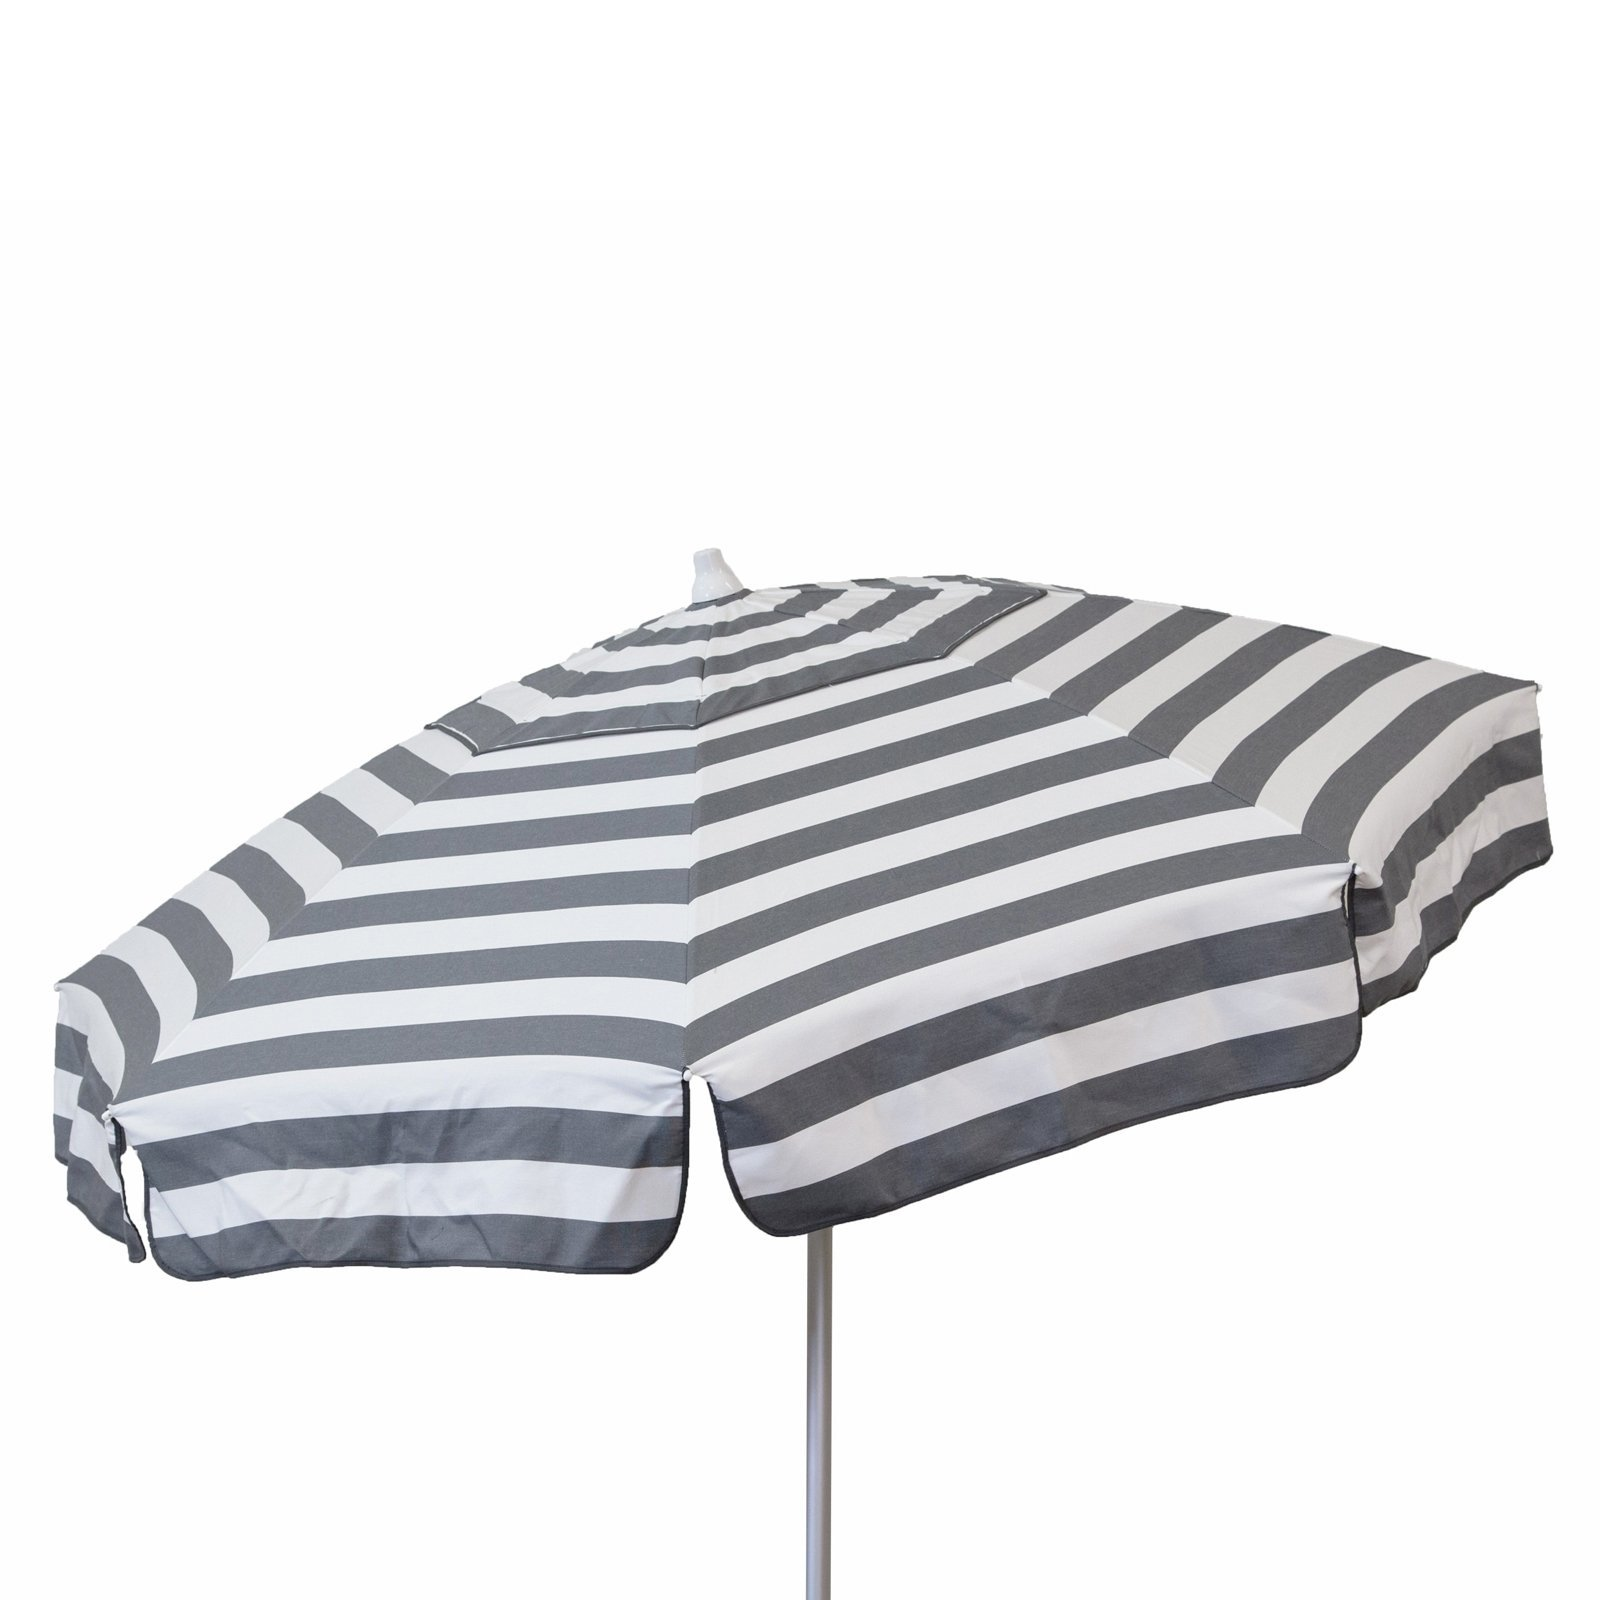 Italian 6 foot Push/Tilt Umbrella Acrylic Stripes Steel Grey and White - Patio Pole